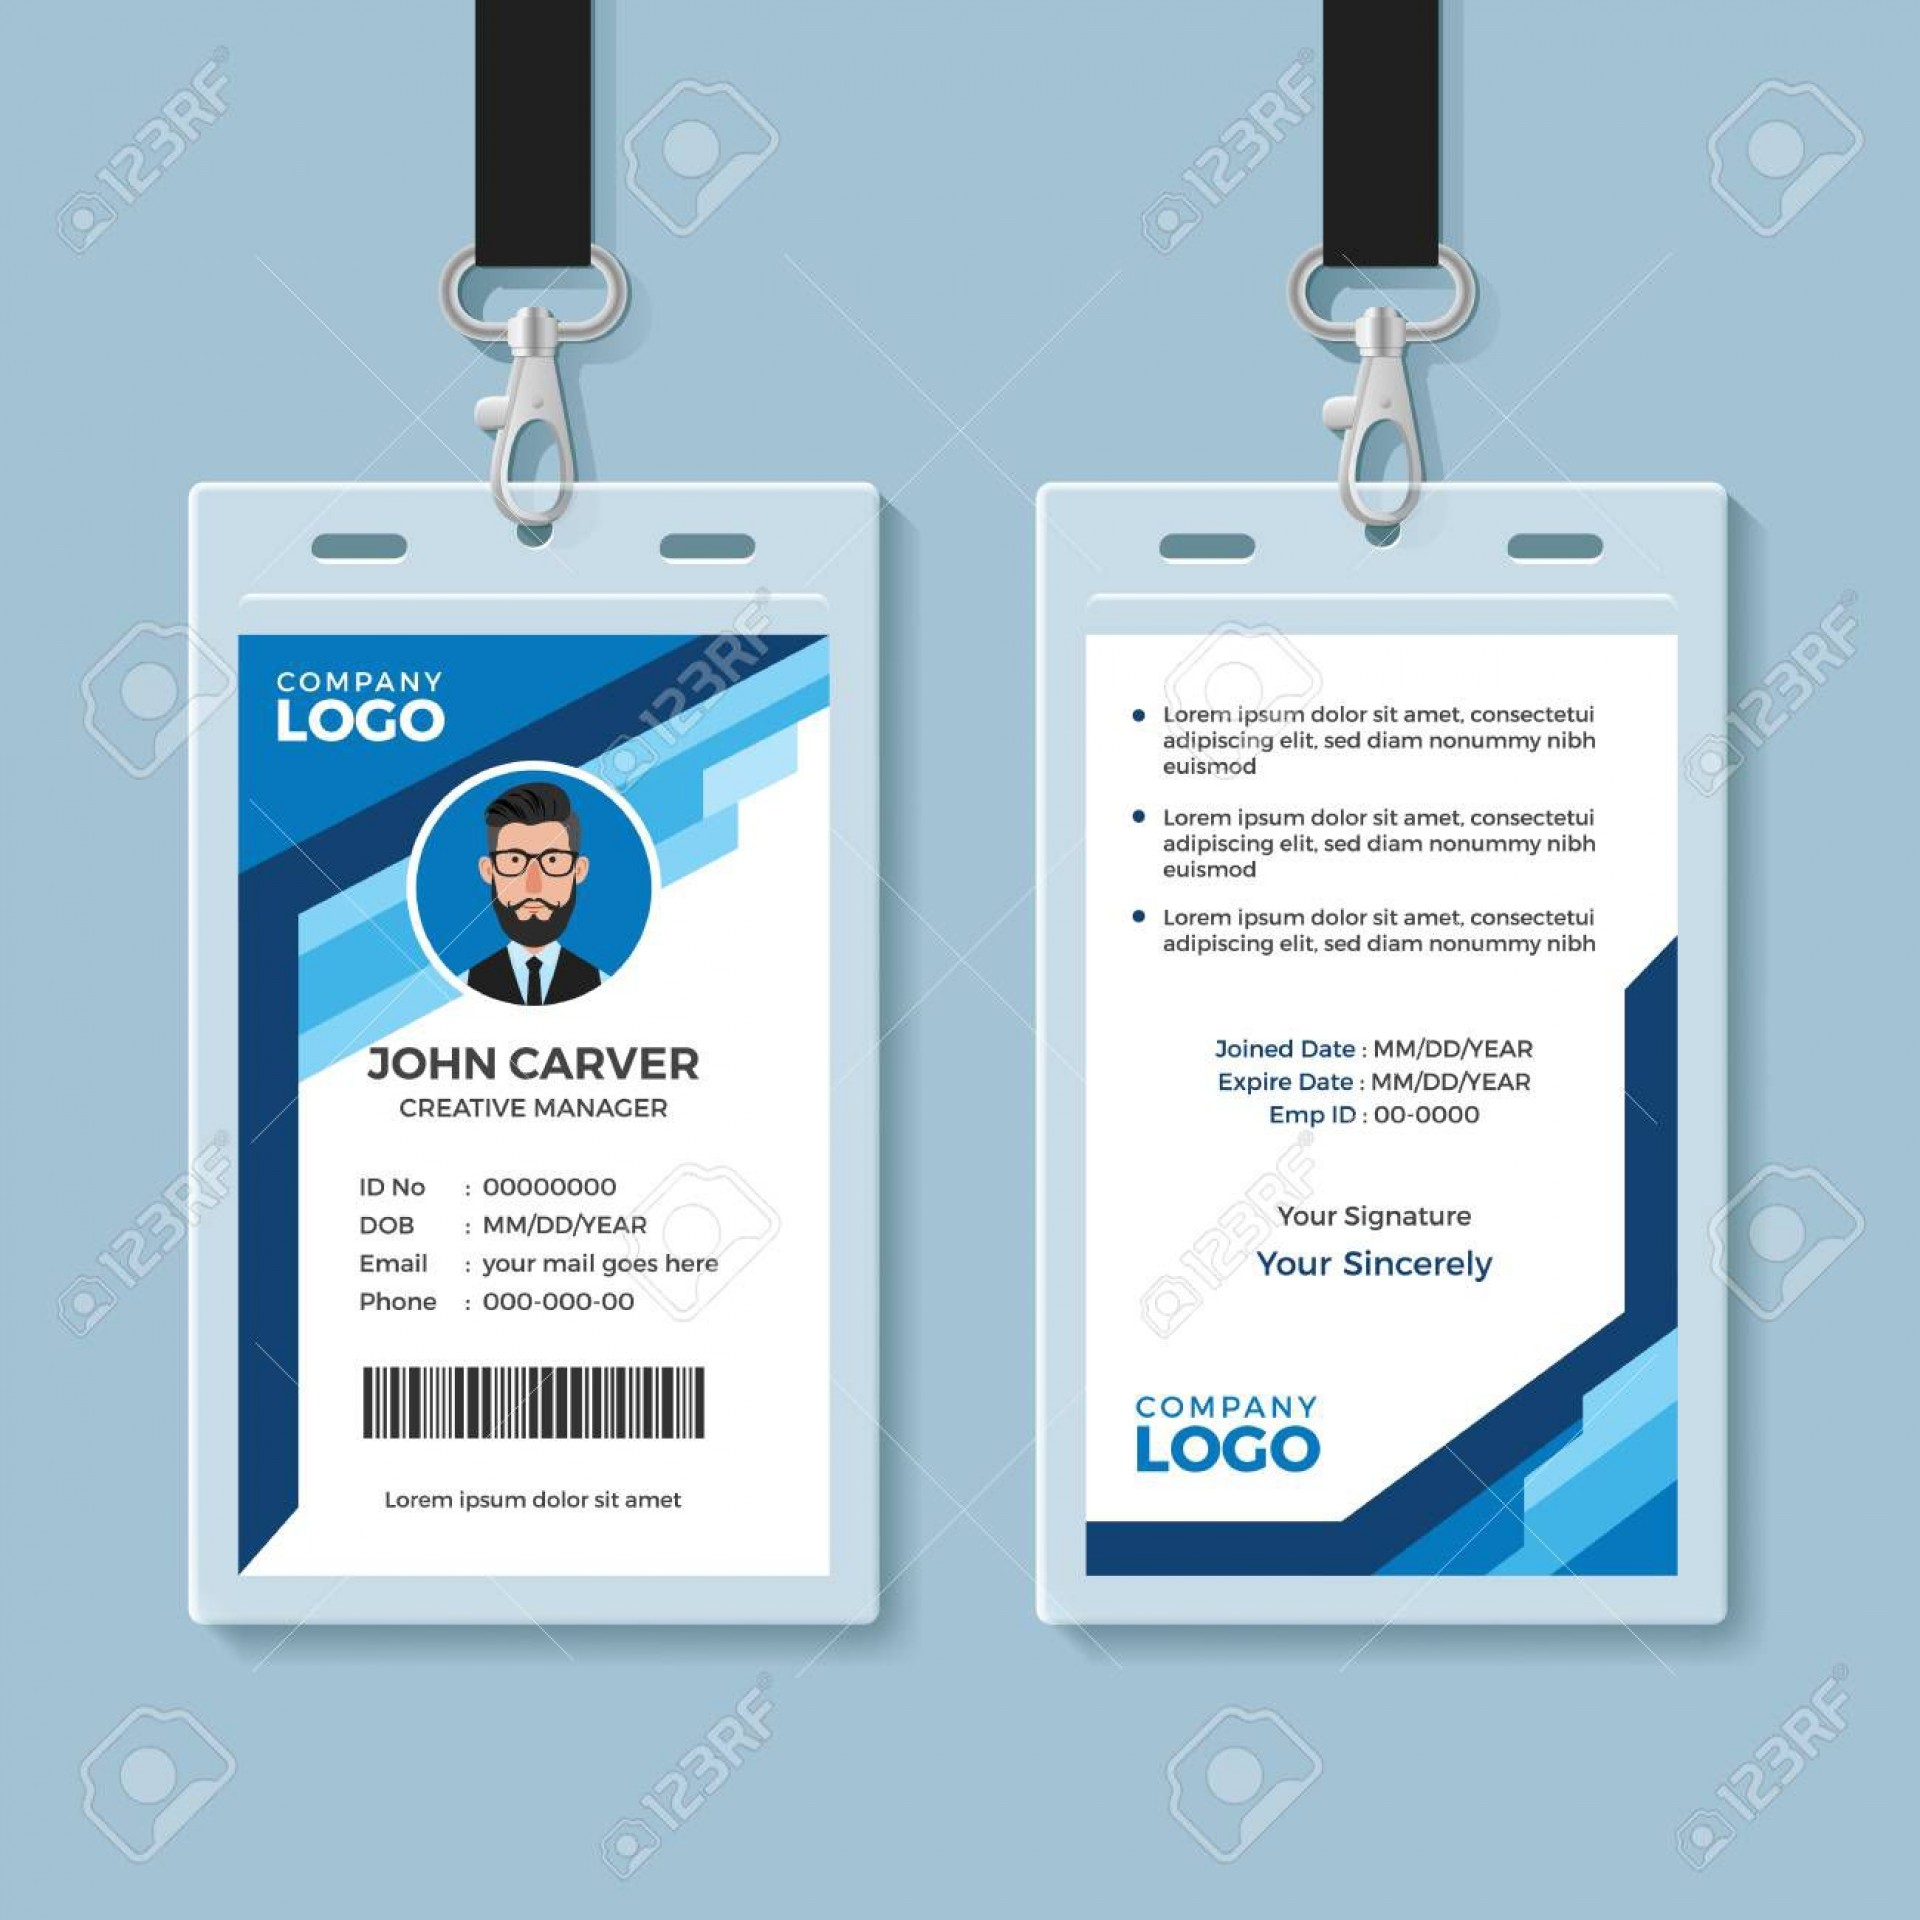 002 Phenomenal Employee Id Badge Template Highest Quality  Avery Card Free Download Word1920